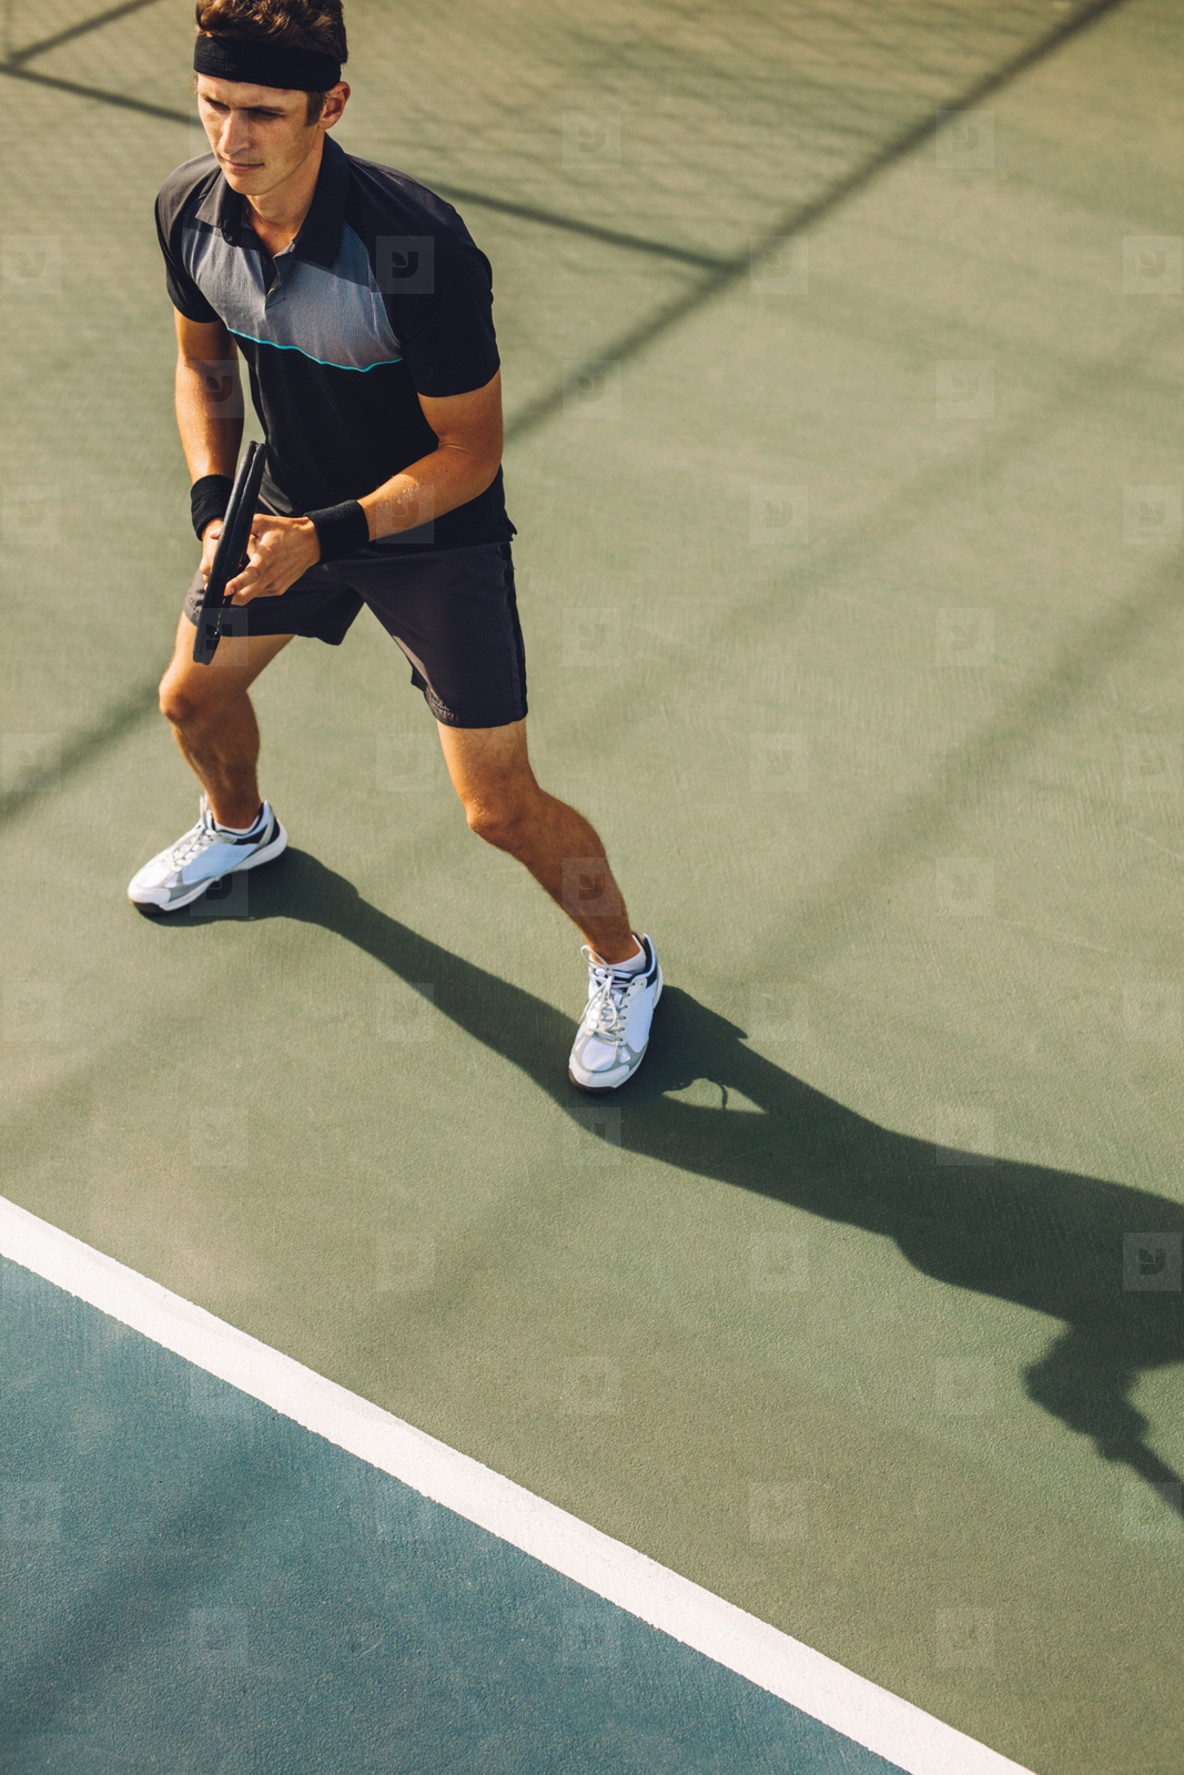 Tennis player ready on the baseline